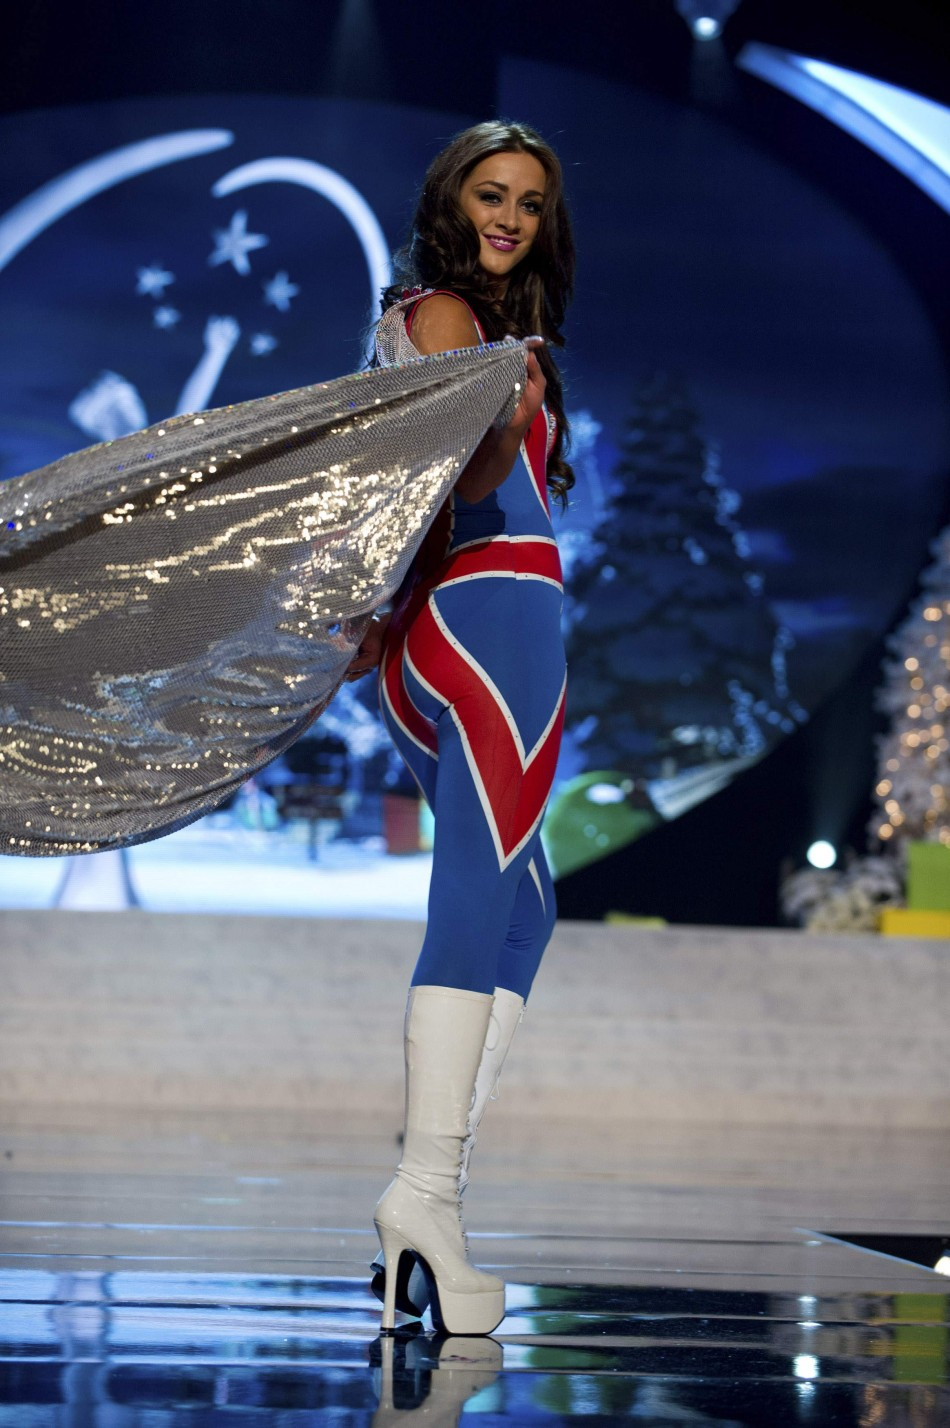 Miss Great Britain Hale on stage at the 2012 Miss Universe National Costume Show at PH Live in Las Vegas